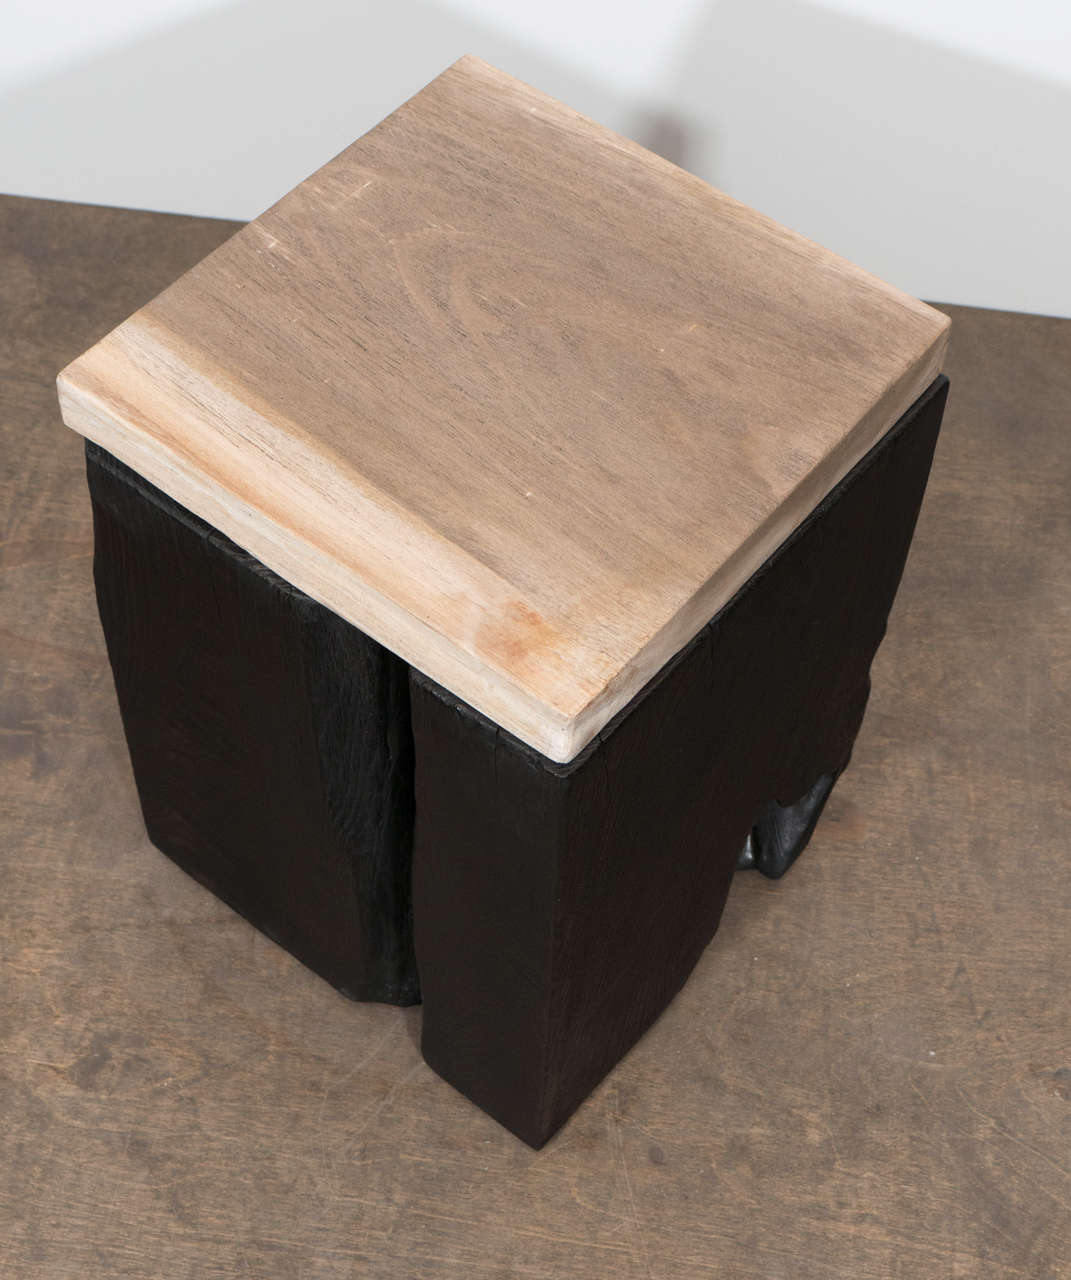 Andrianna Shamaris Triple Burnt Teak Wood Side Table with Petrified Wood Top In New Condition For Sale In New York, NY